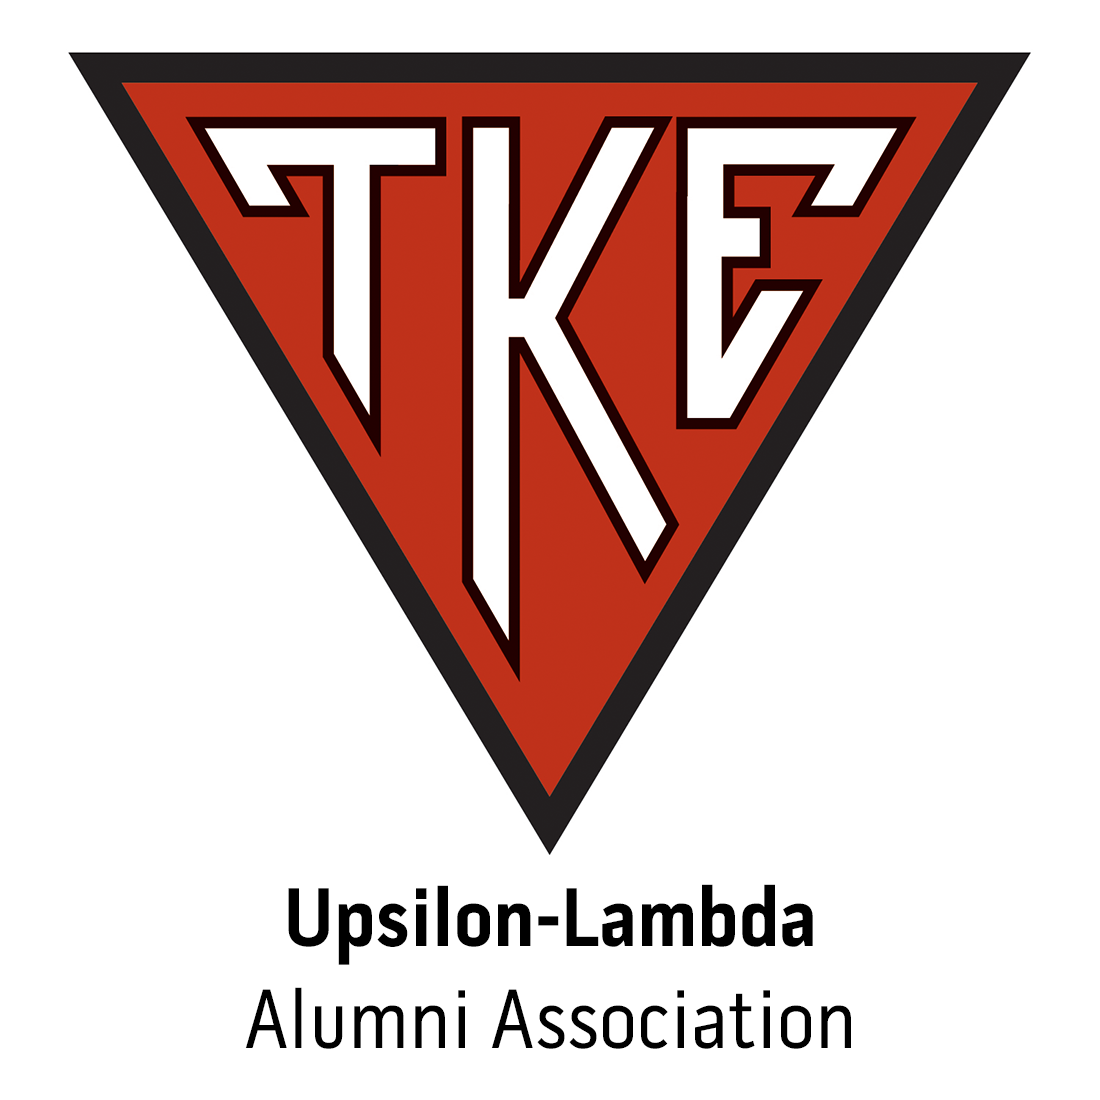 Upsilon-Lambda Alumni Association Alumni at College of Staten Island